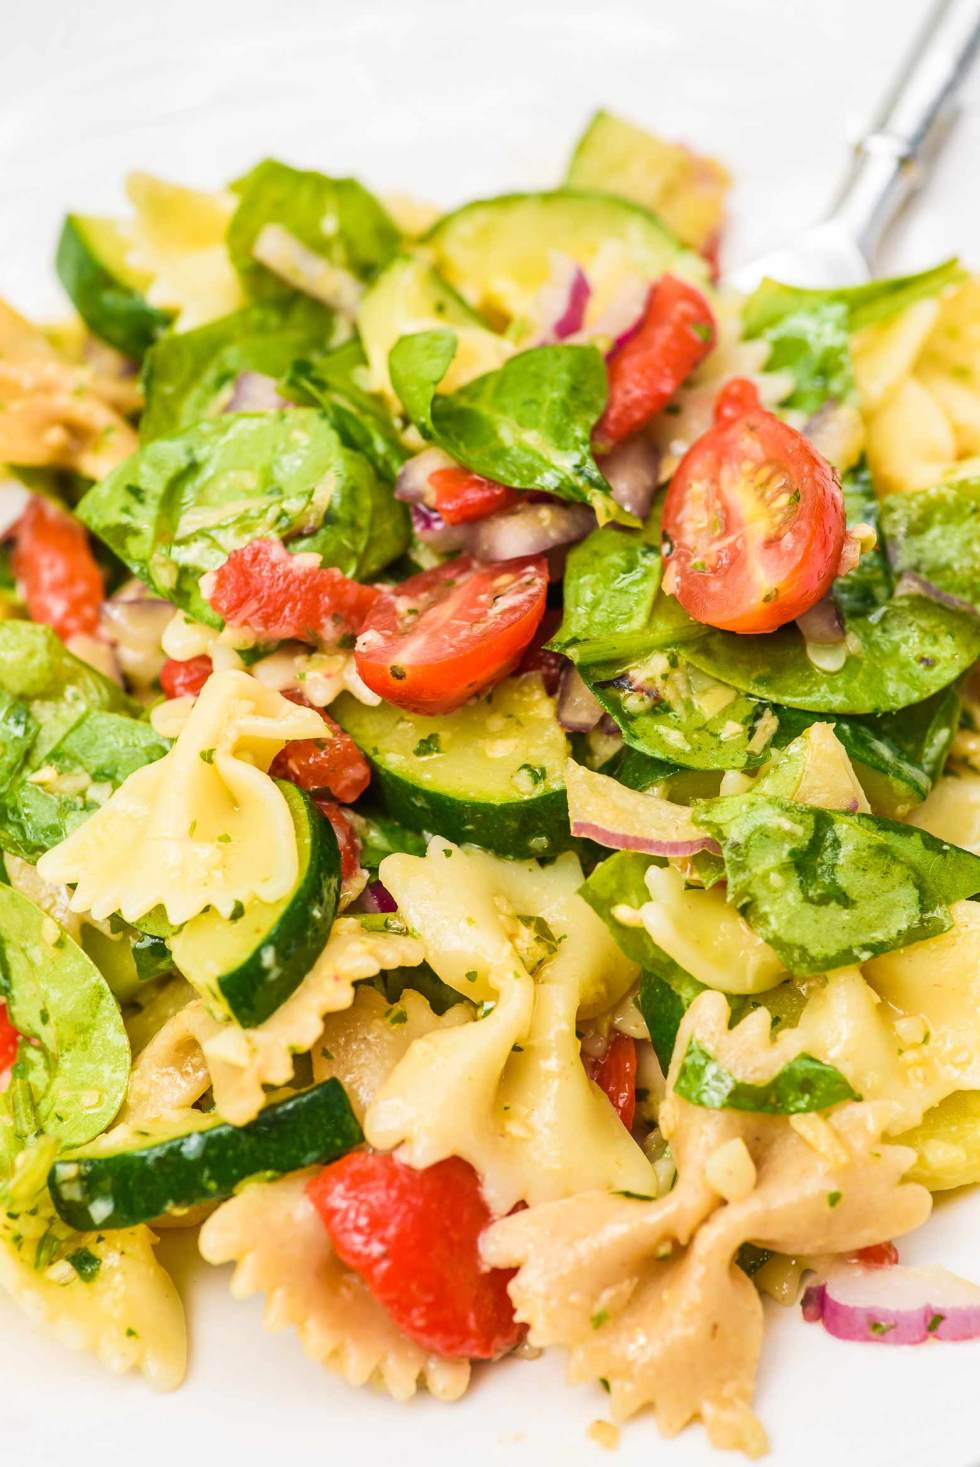 cold pasta salad with artichoke pesto sauce, zucchini, spinach, tomatoes and fresh summer veggies